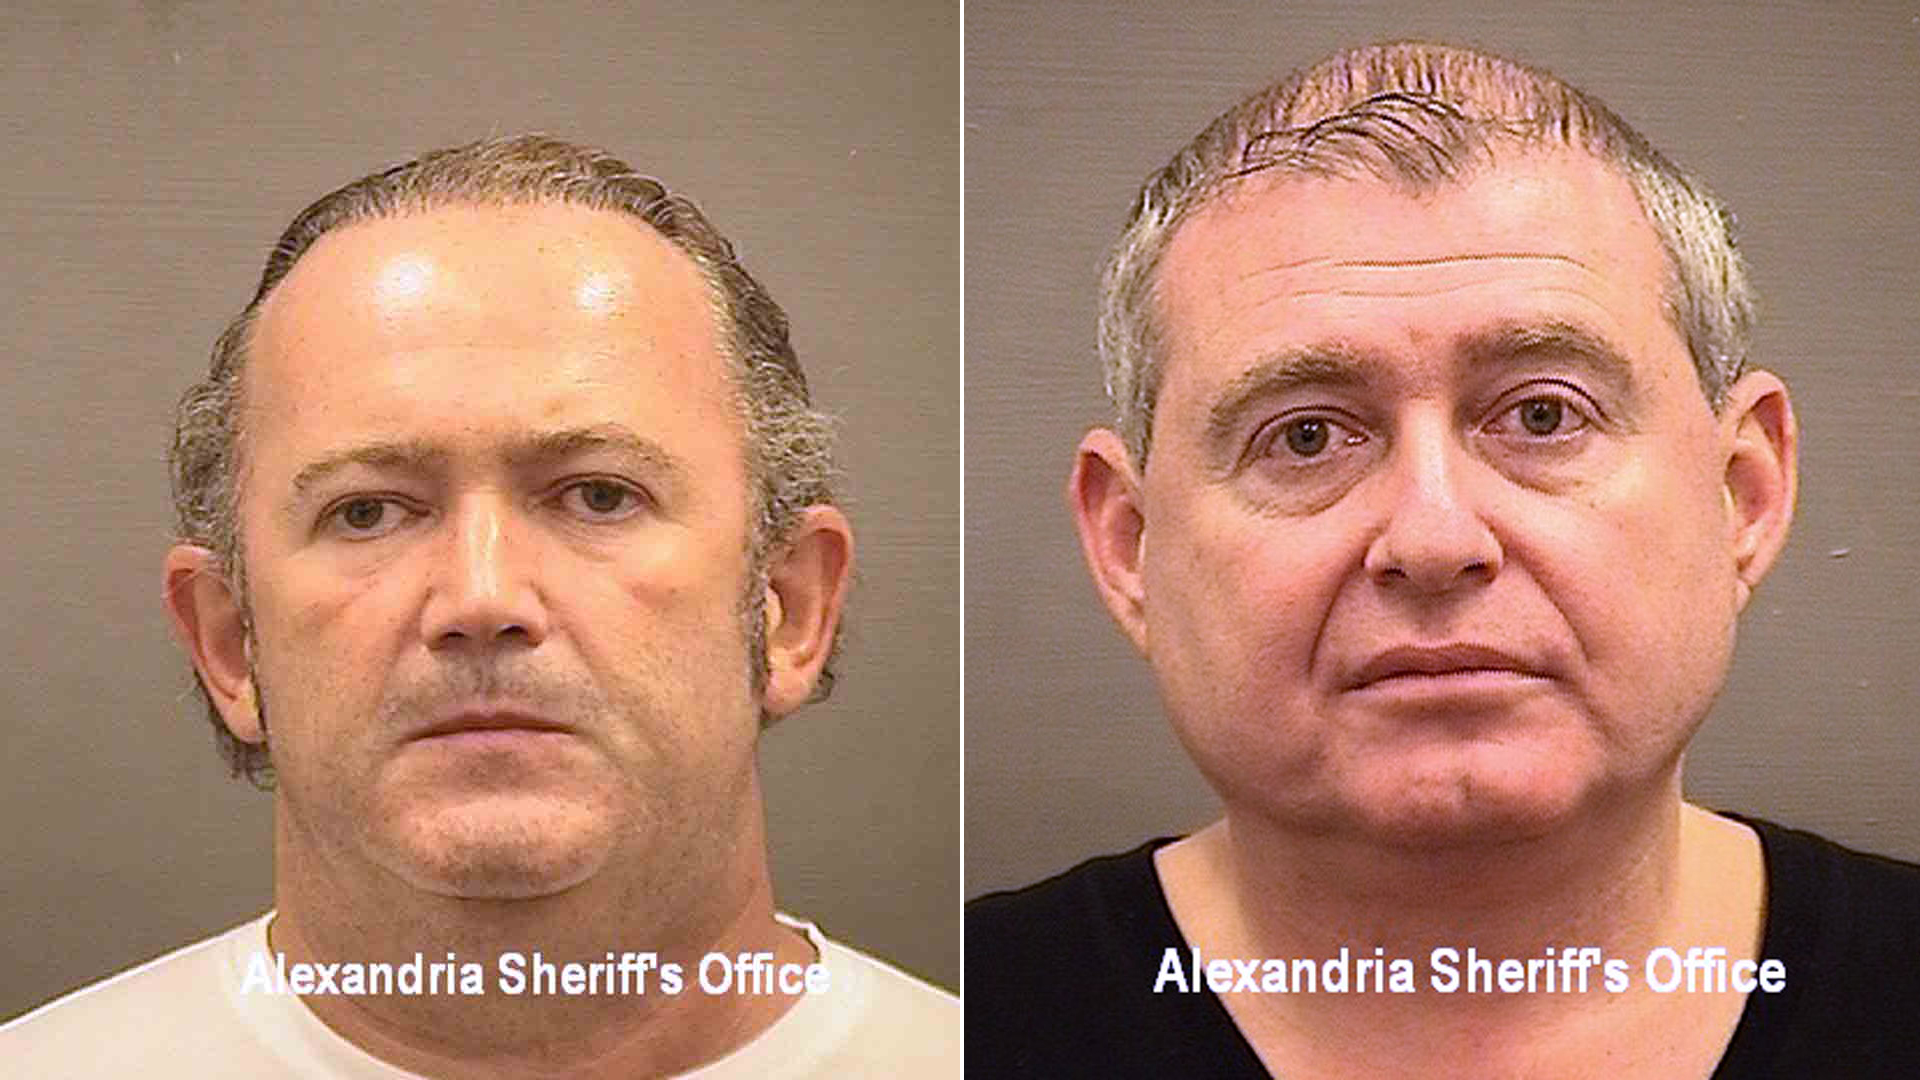 Booking photos of Igor Fruman, left, and Les Parnas, right. (Credit: Alexandria County Sheriff's Office via Getty Images)